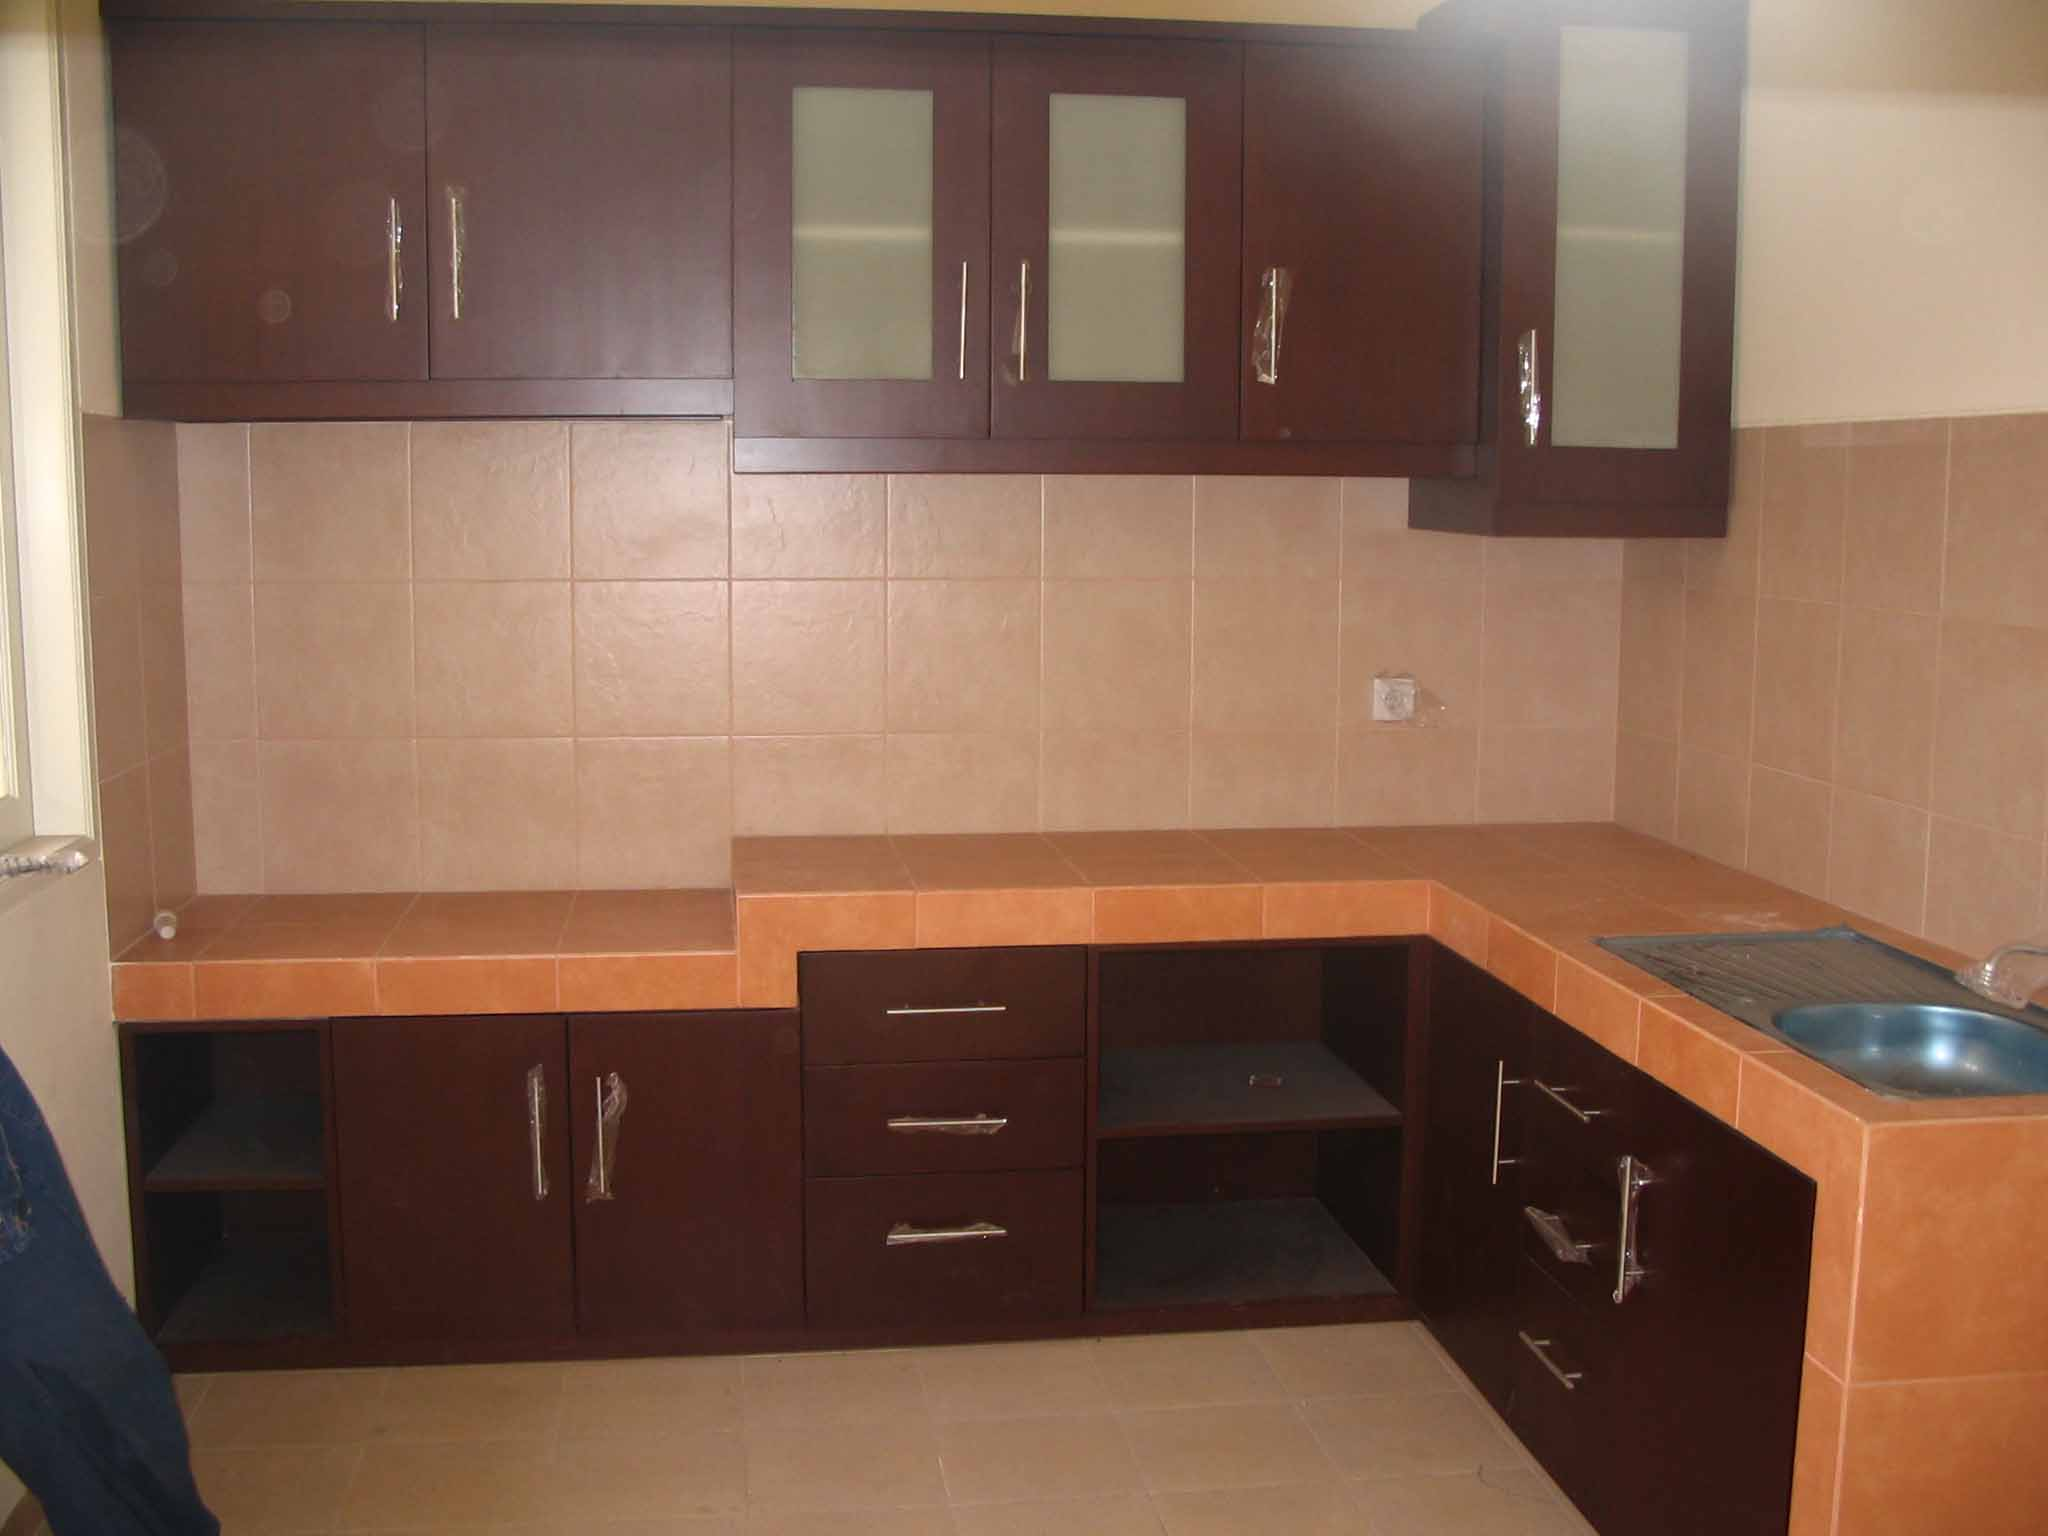 Harga Meja Dapur Kitchen Set / Dapur | Furniture, Mebel, Interior